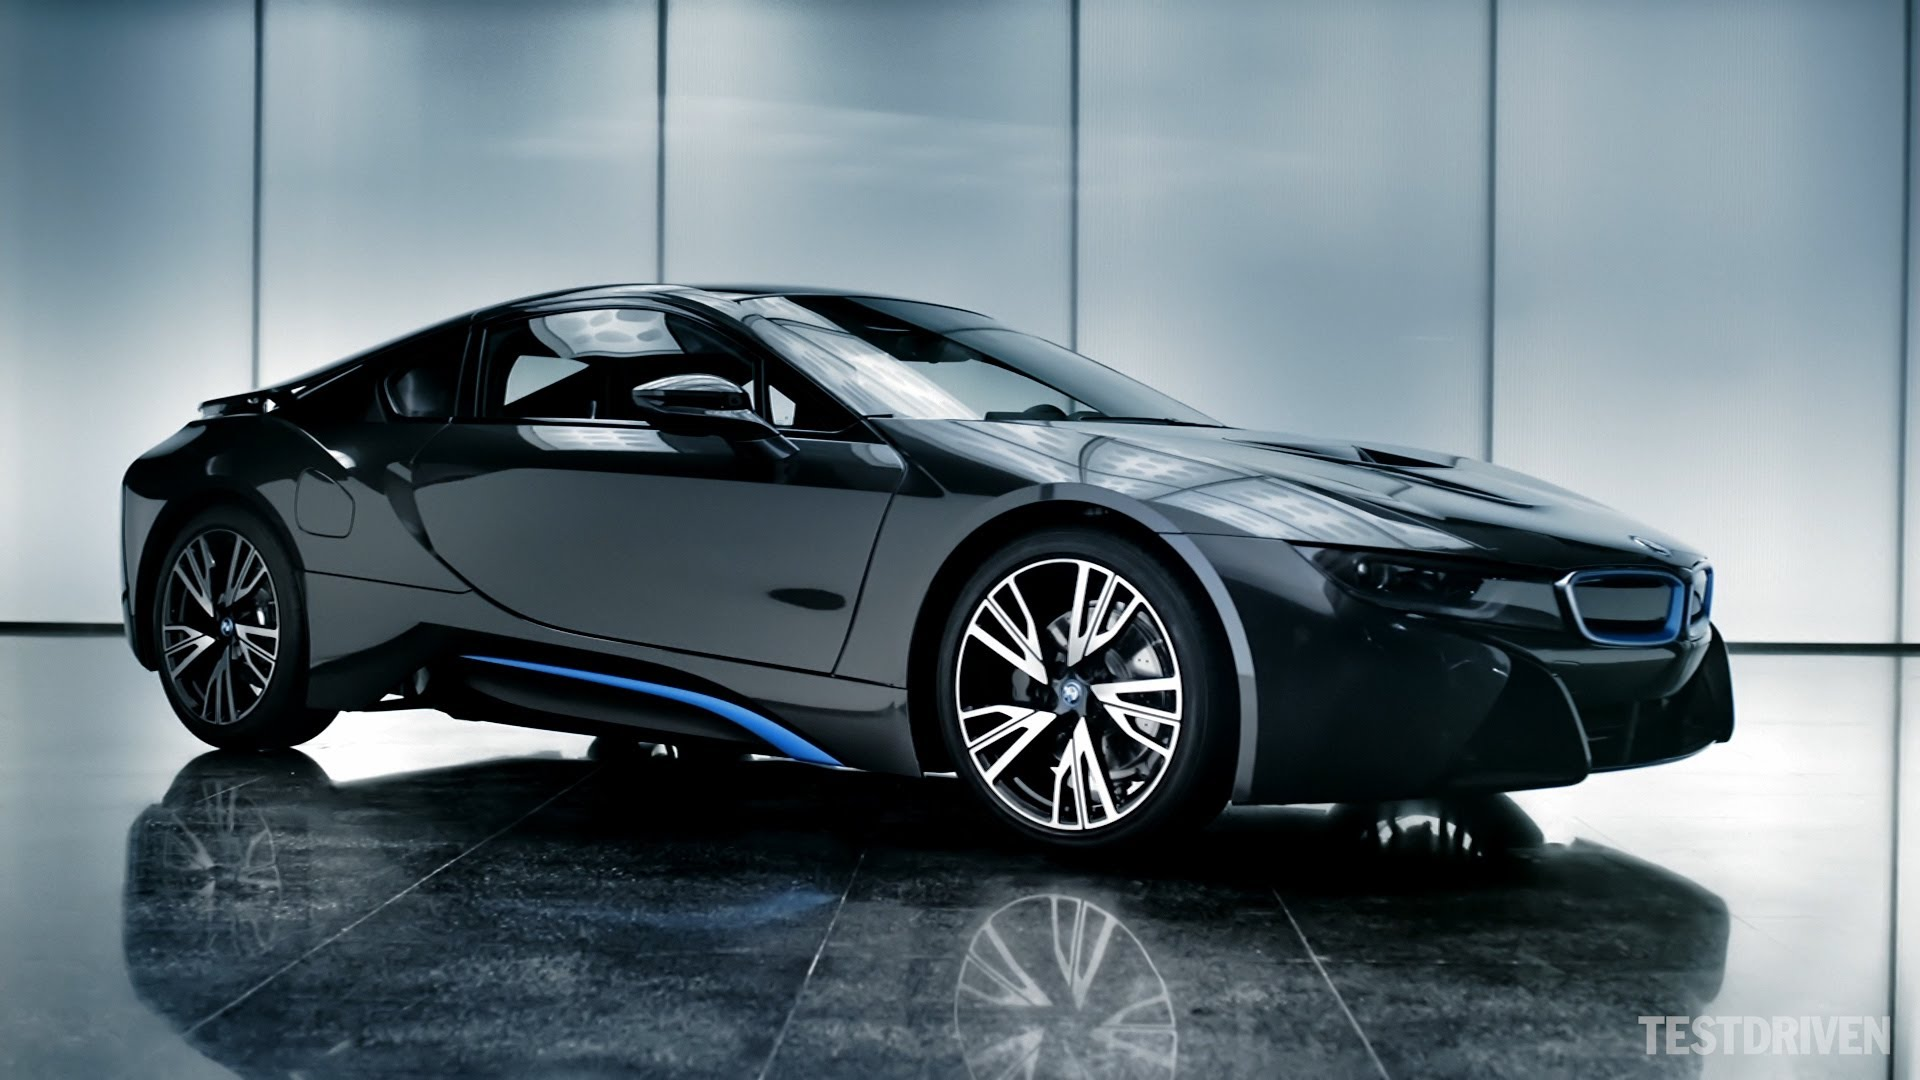 Bmw I8 Wallpaper 1920x1080 75768